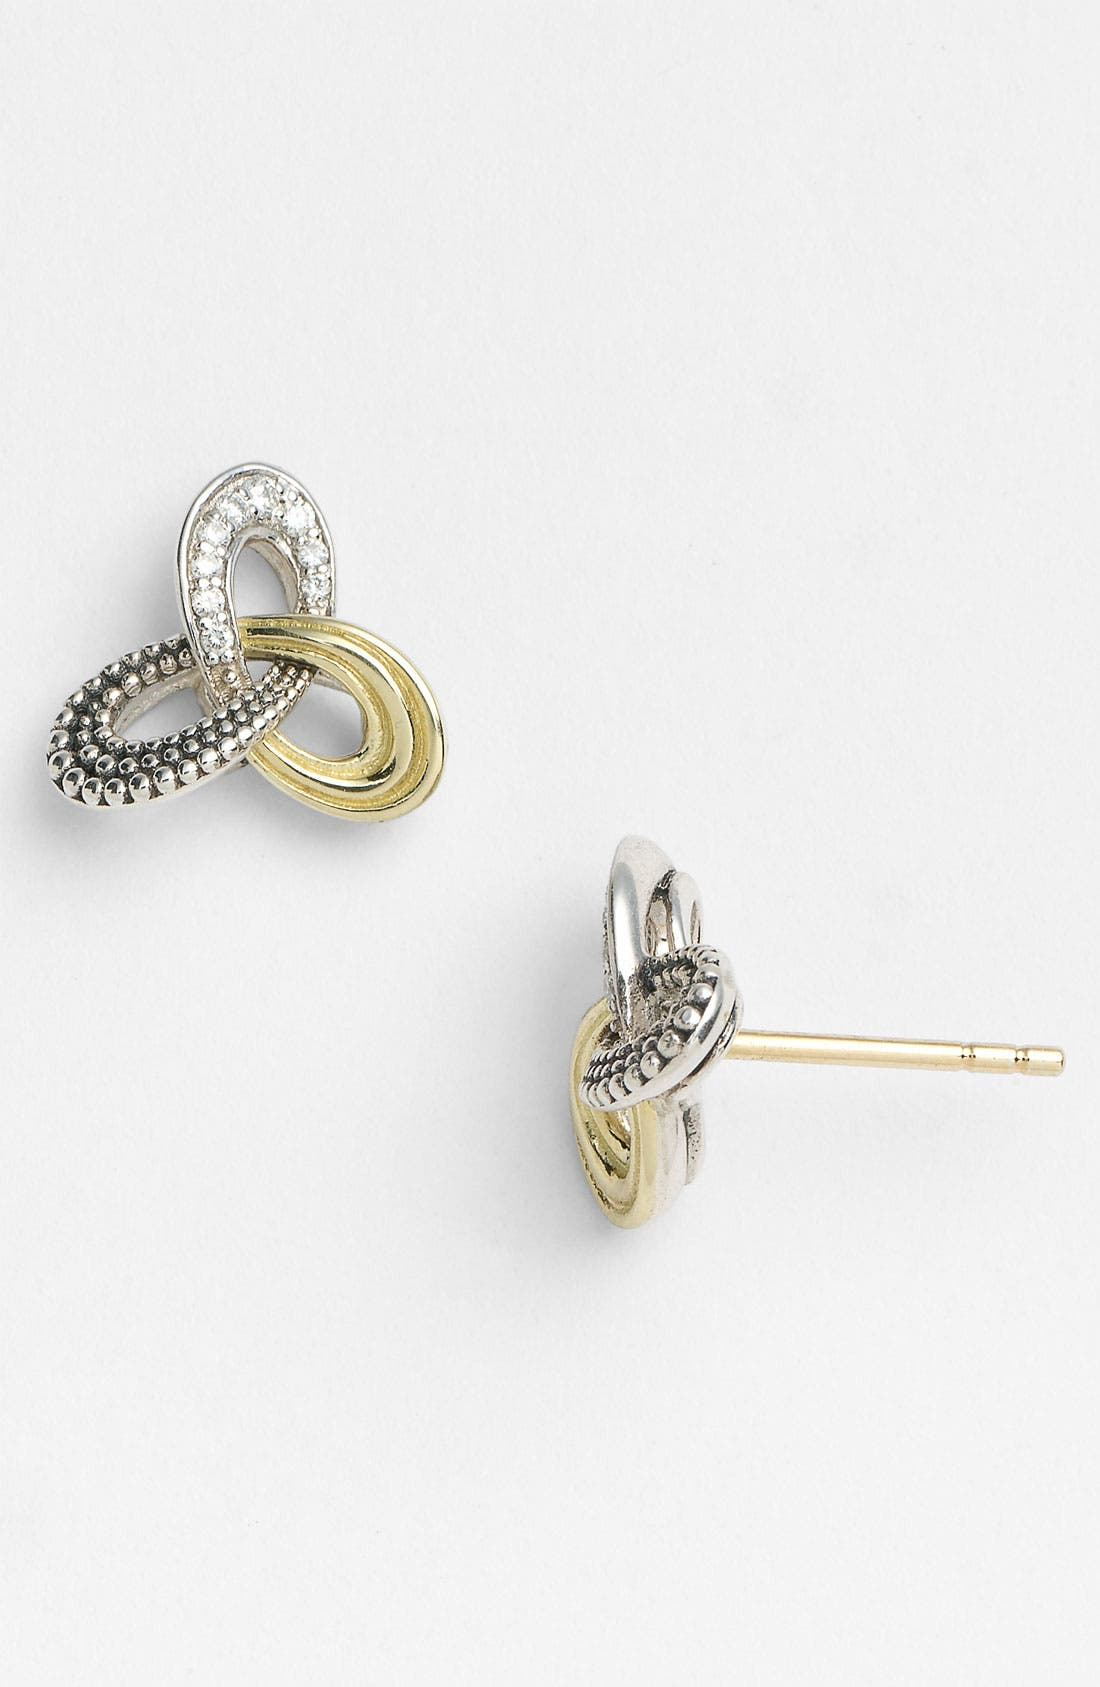 Main Image - LAGOS 'Pirouette' Small Diamond Earrings